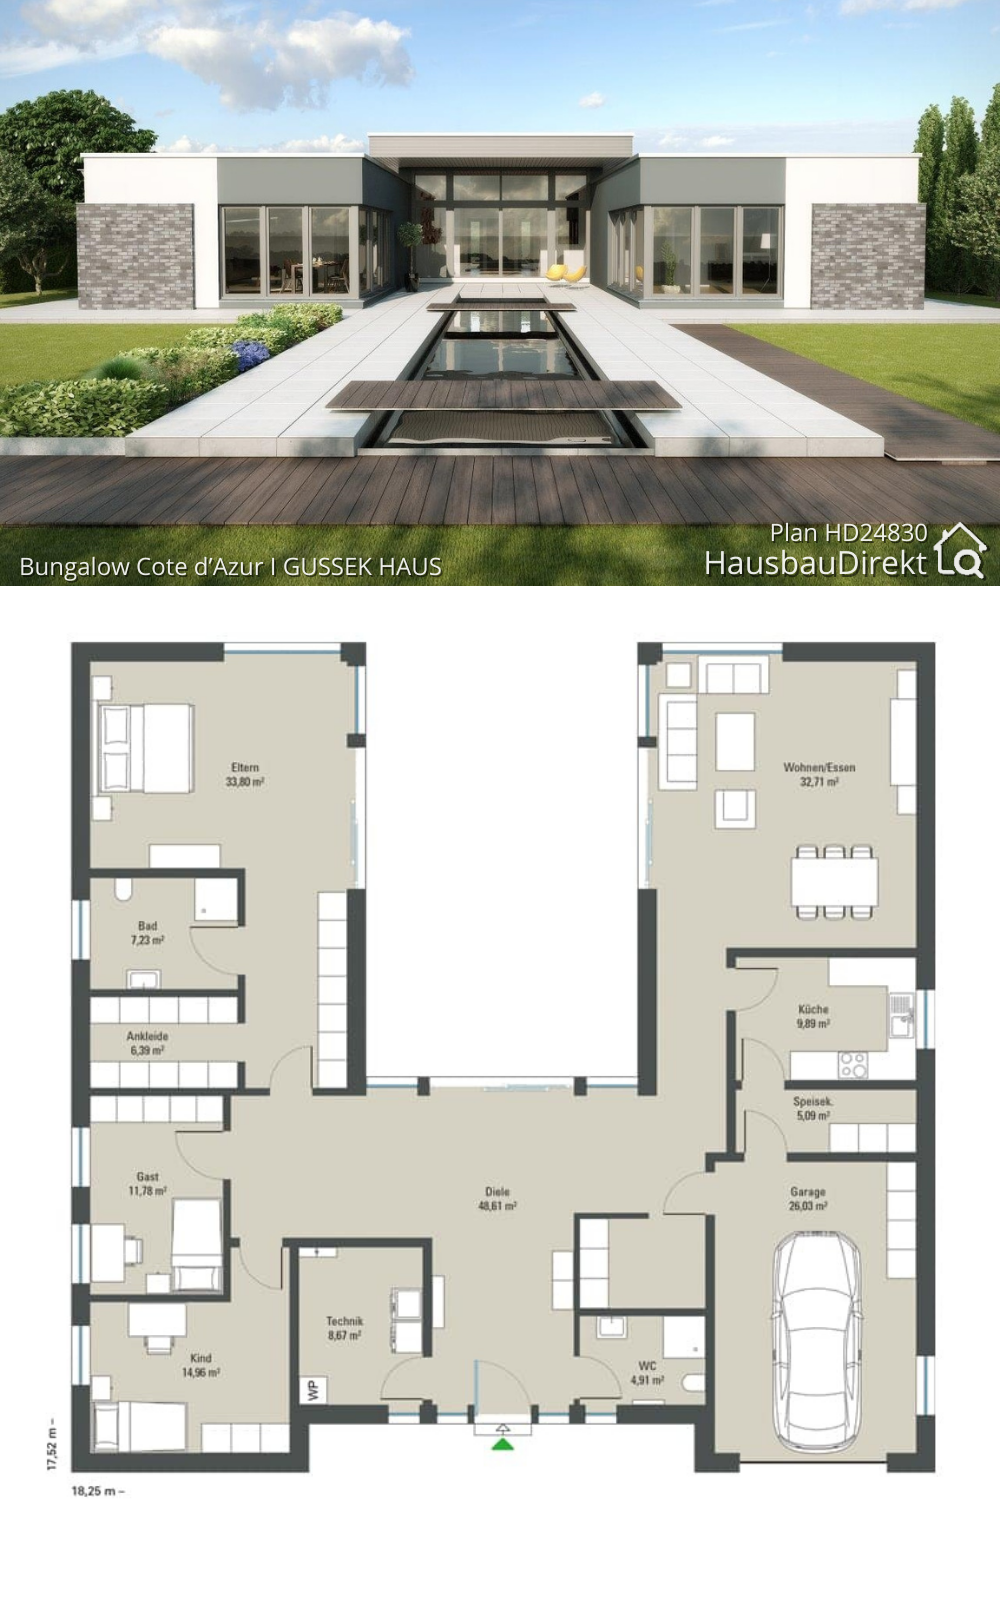 Modern Bungalow House Floor Plans with Flat Roof & Patio Contemporary European Minimalist Design